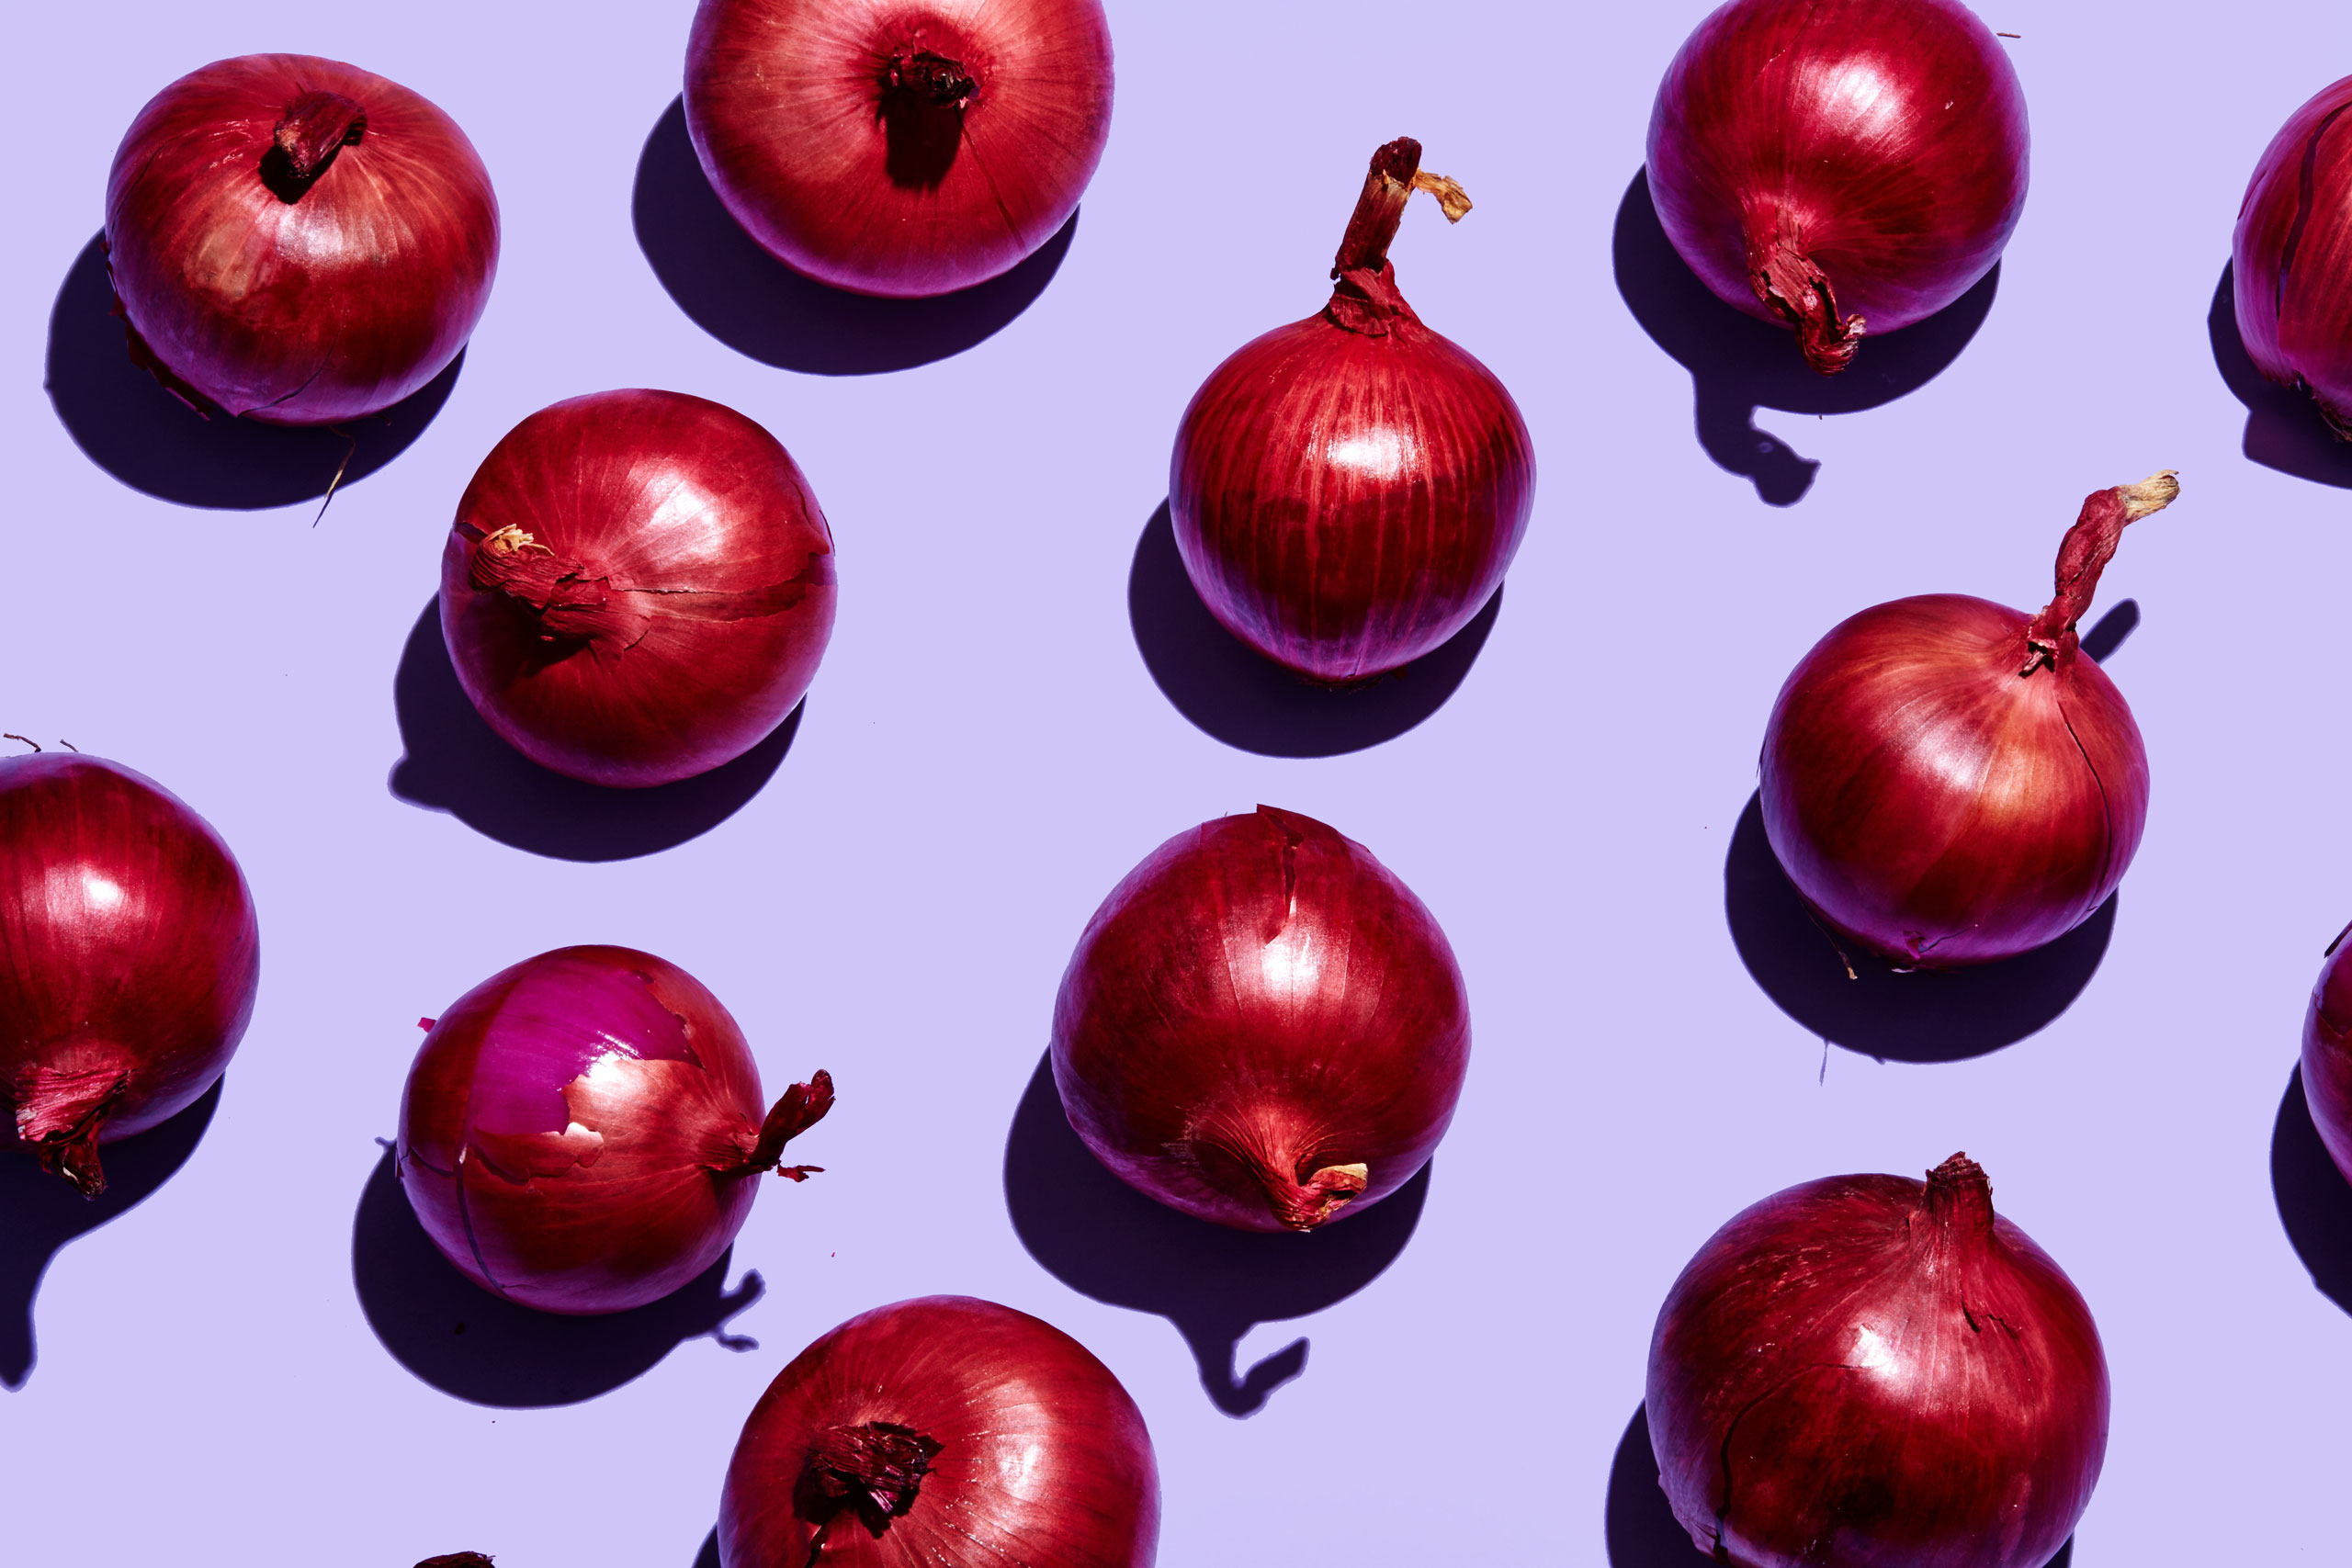 healthiest foods, health food, diet, nutrition, time.com stock, onions, red onions, vegetables